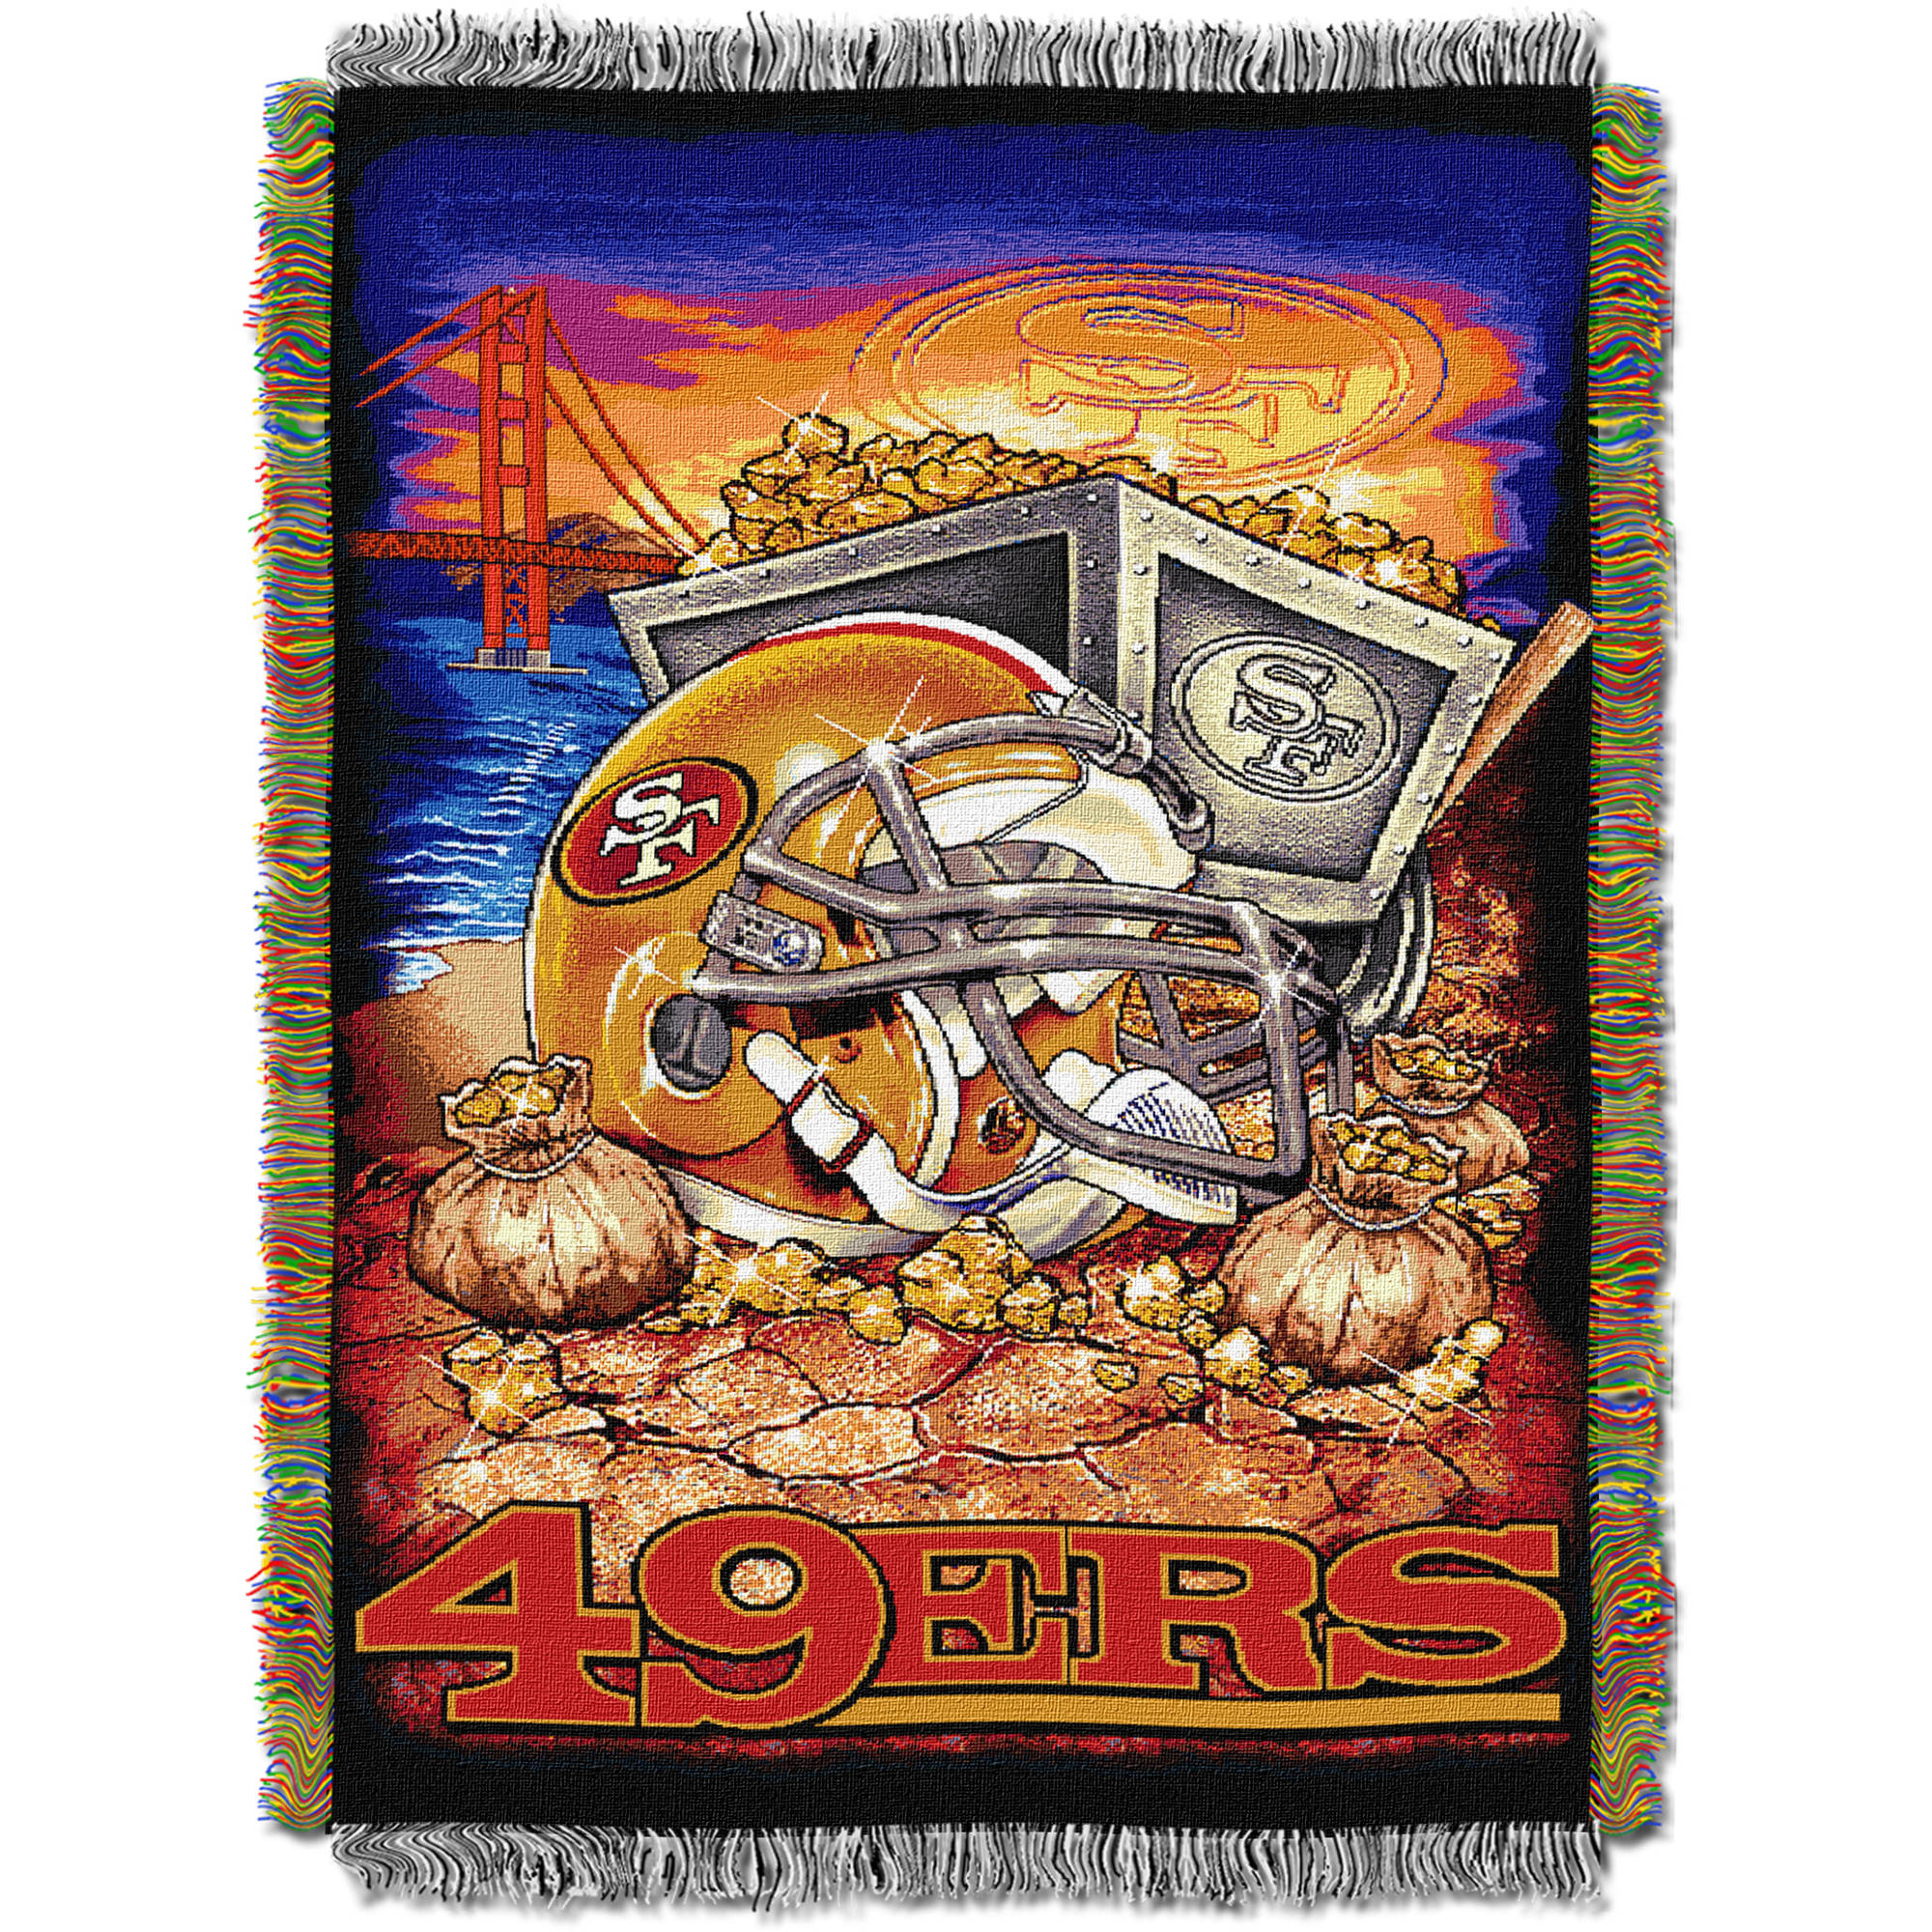 "NFL 48"" x 60"" Tapestry Throw Home Field Advantage Series- 49ers"